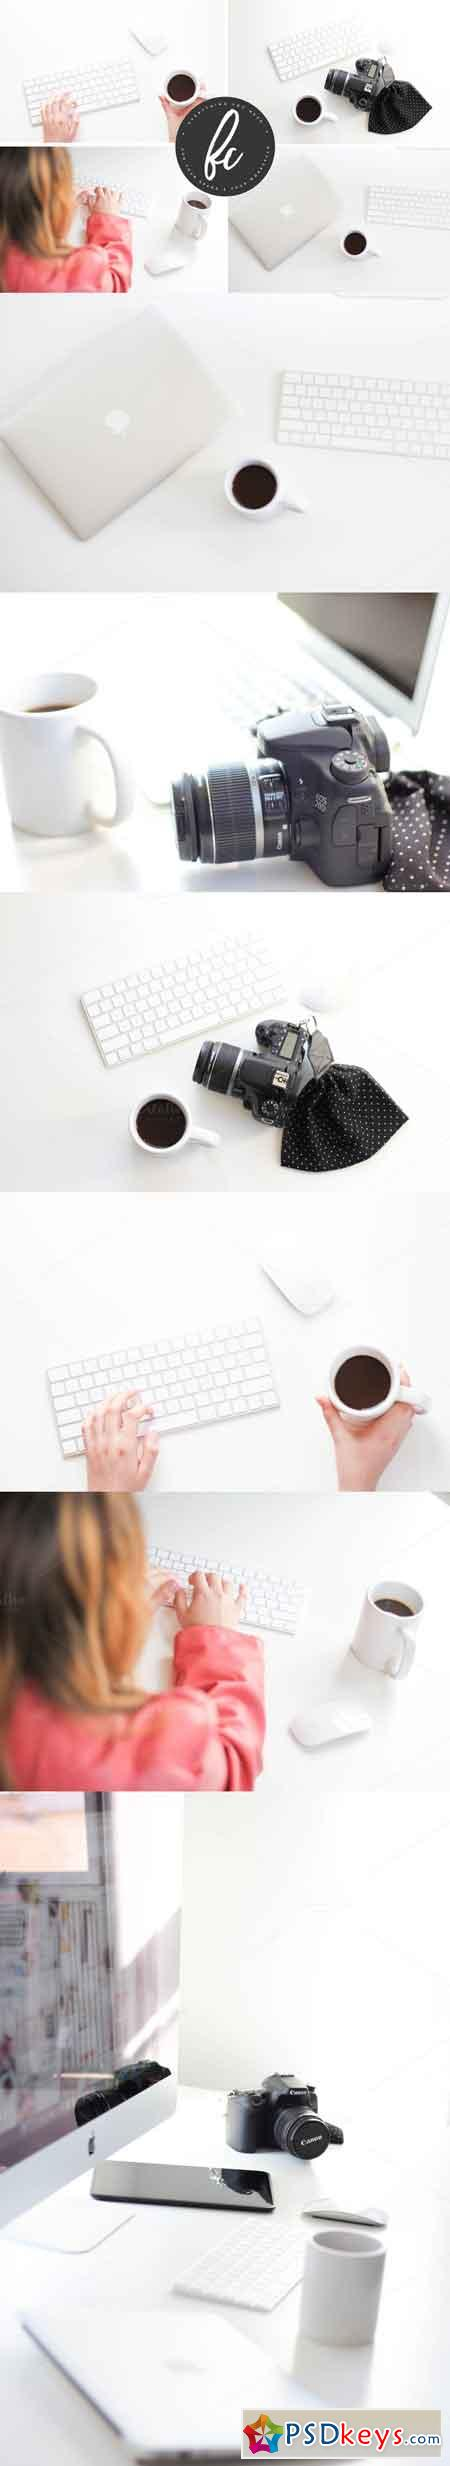 MINIMAL DESK STOCK PHOTO BUNDLE 786698